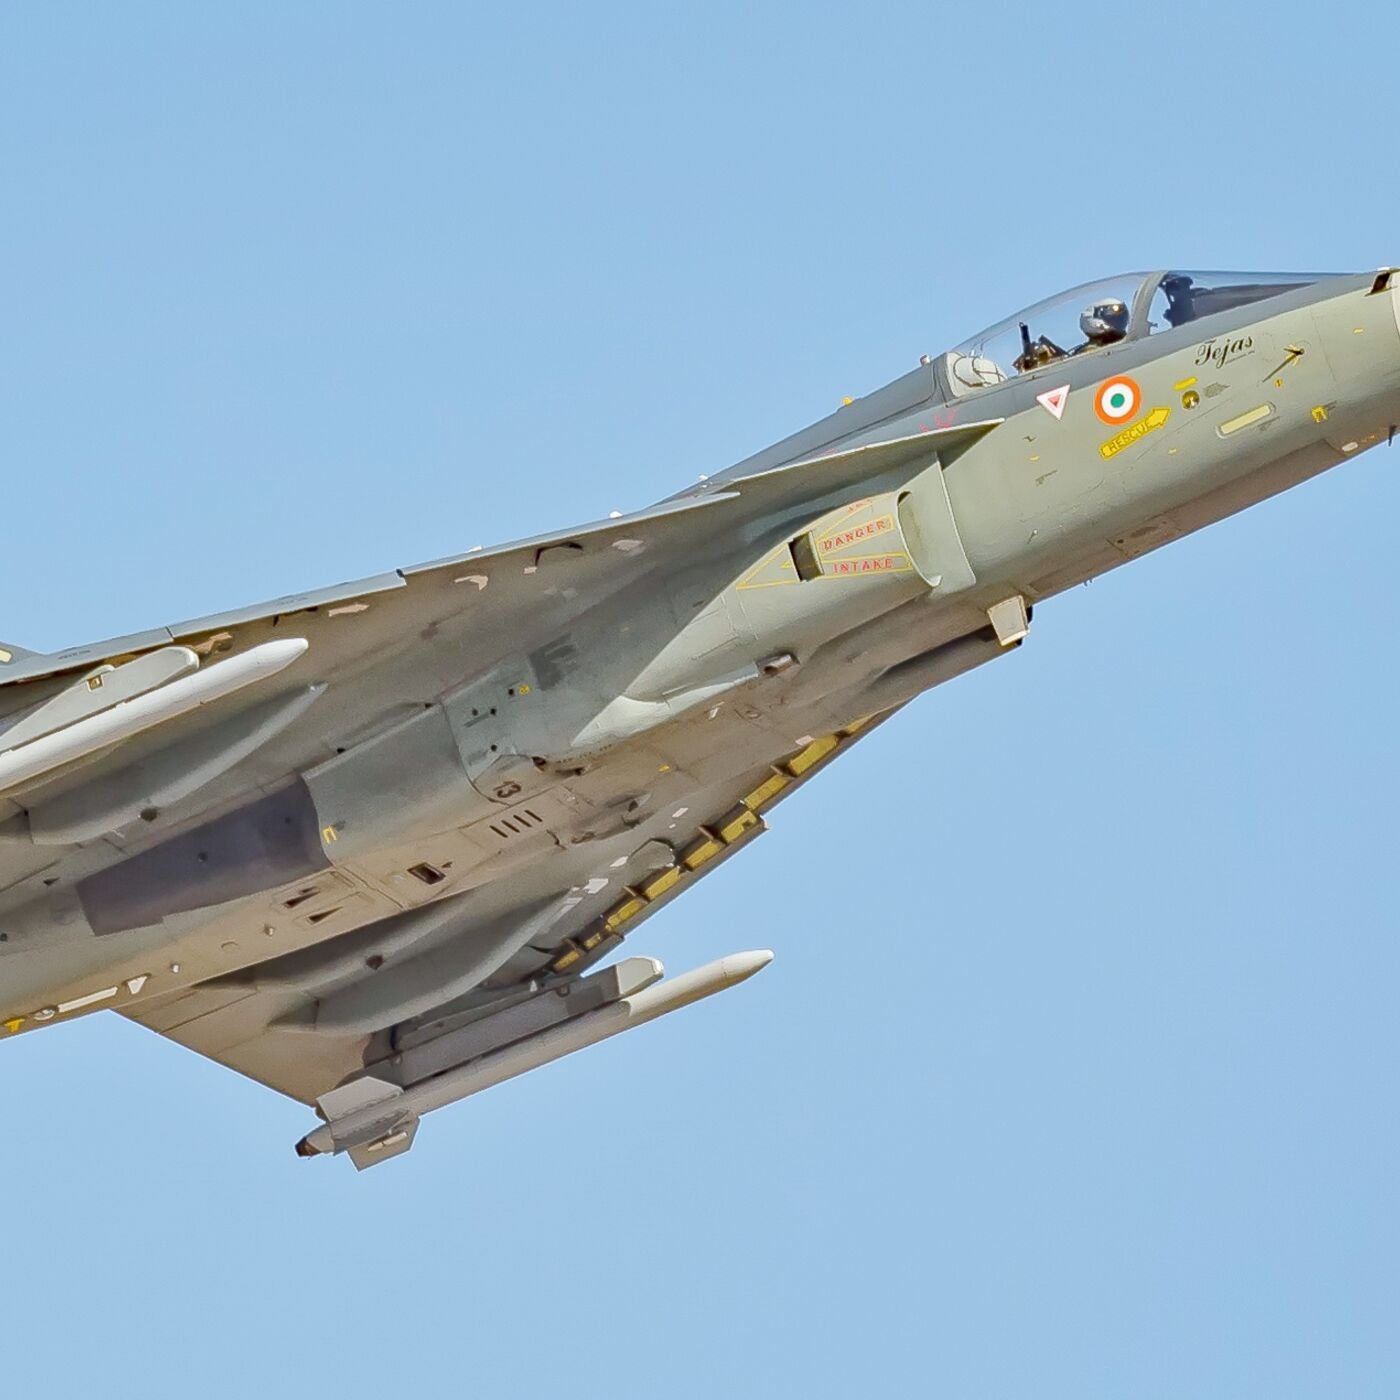 HAL Tejas India's Home Grown Fighter